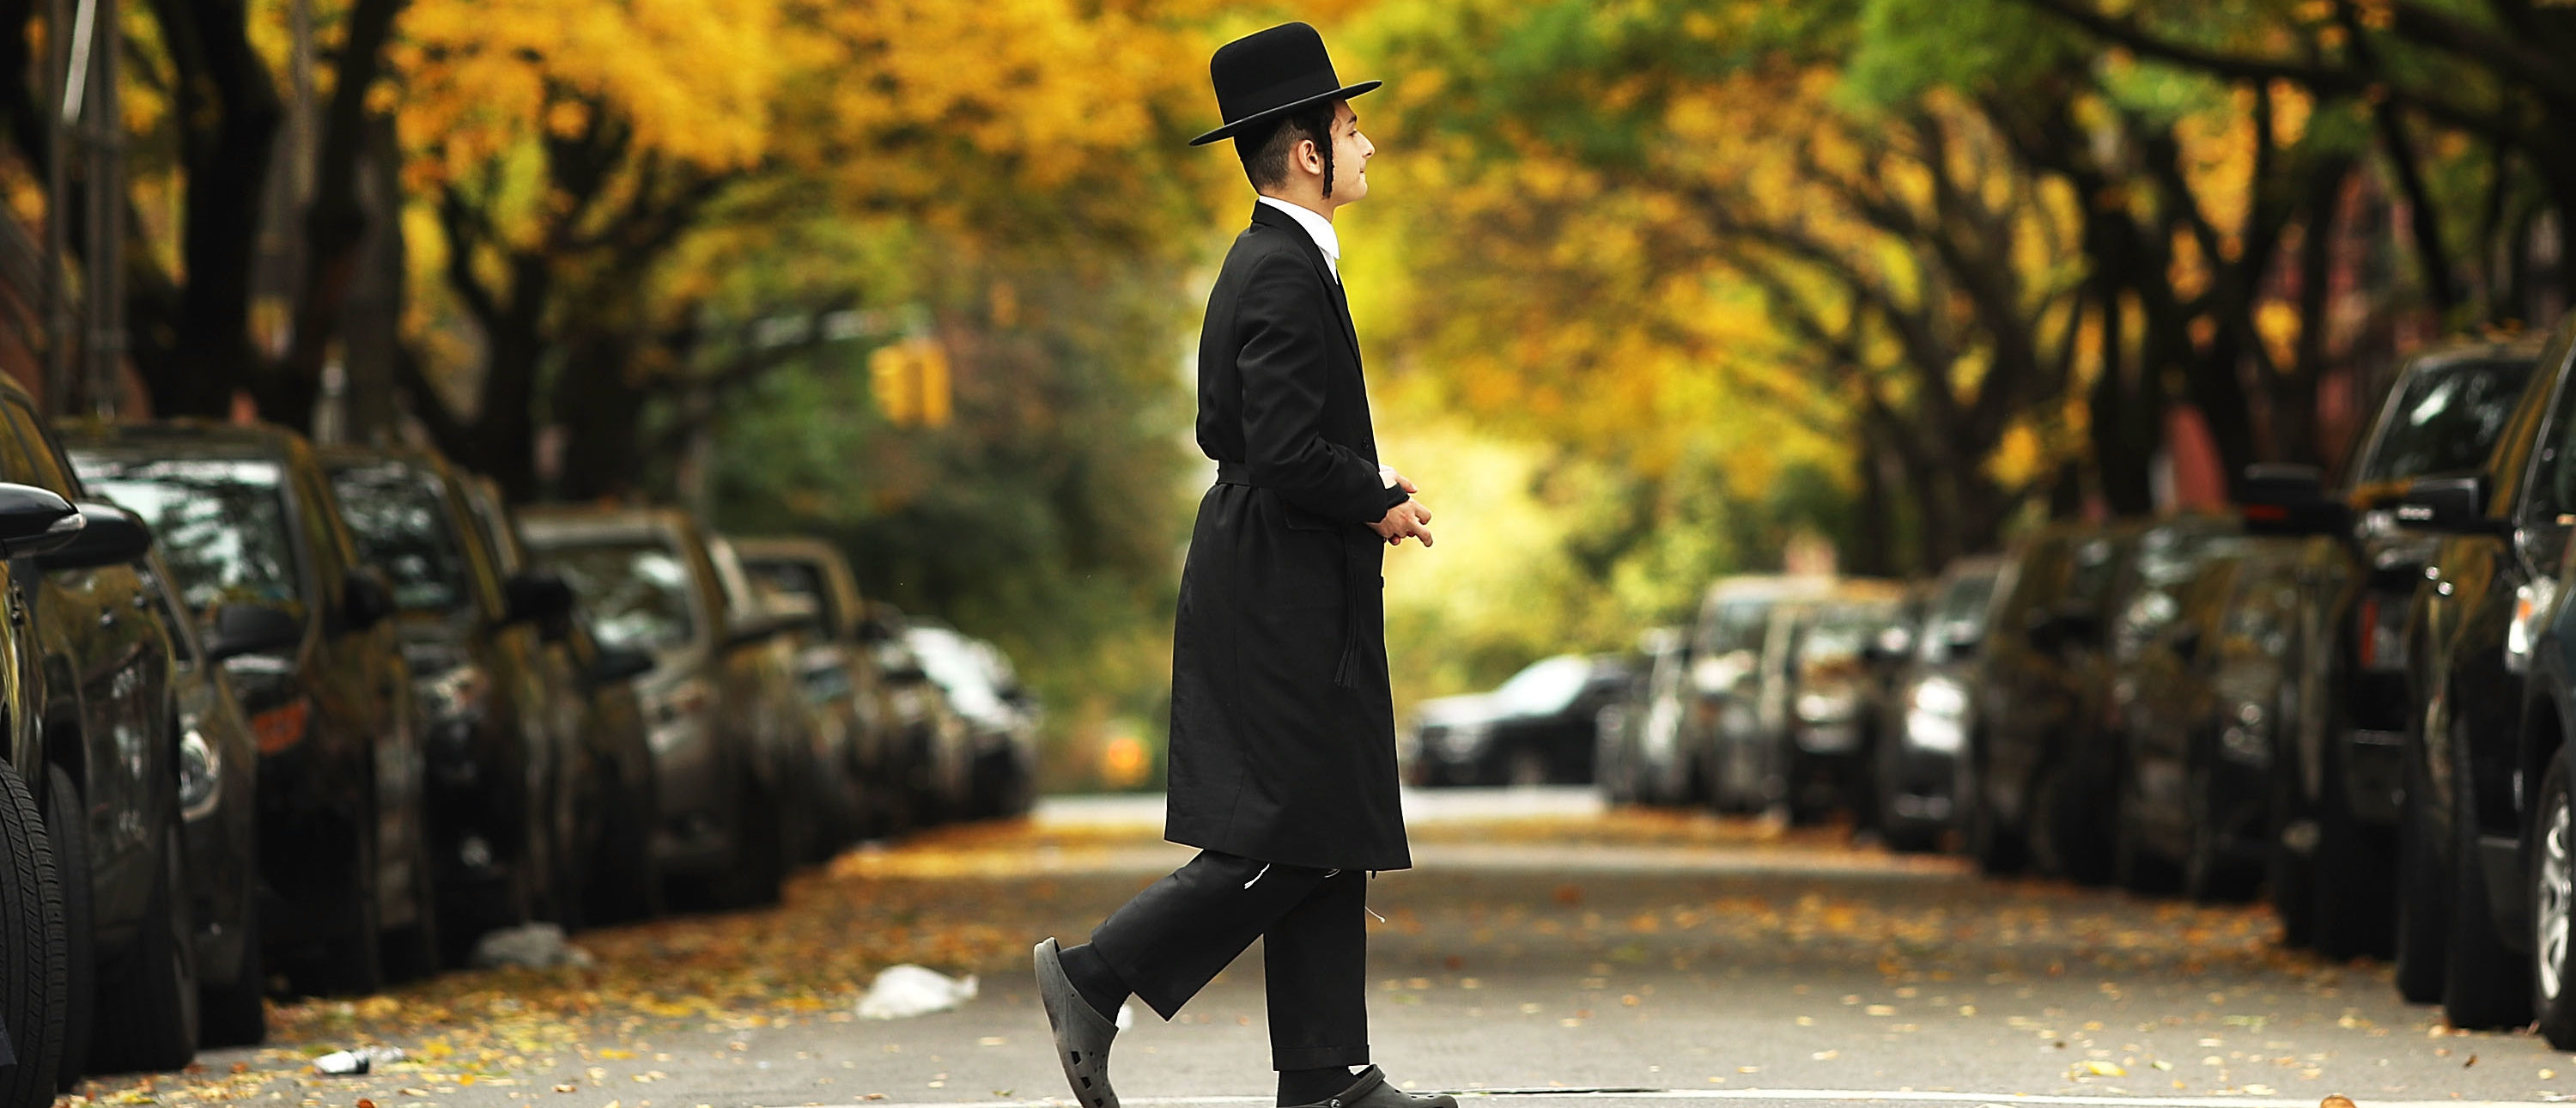 A member of an Orthodox Jewish community in Williamsburg, Brooklyn walks through the neighborhood on Yom Kippur, one of the most important holidays of the Jewish year on October 12, 2016 in New York City.(Photo by Spencer Platt/Getty Images)